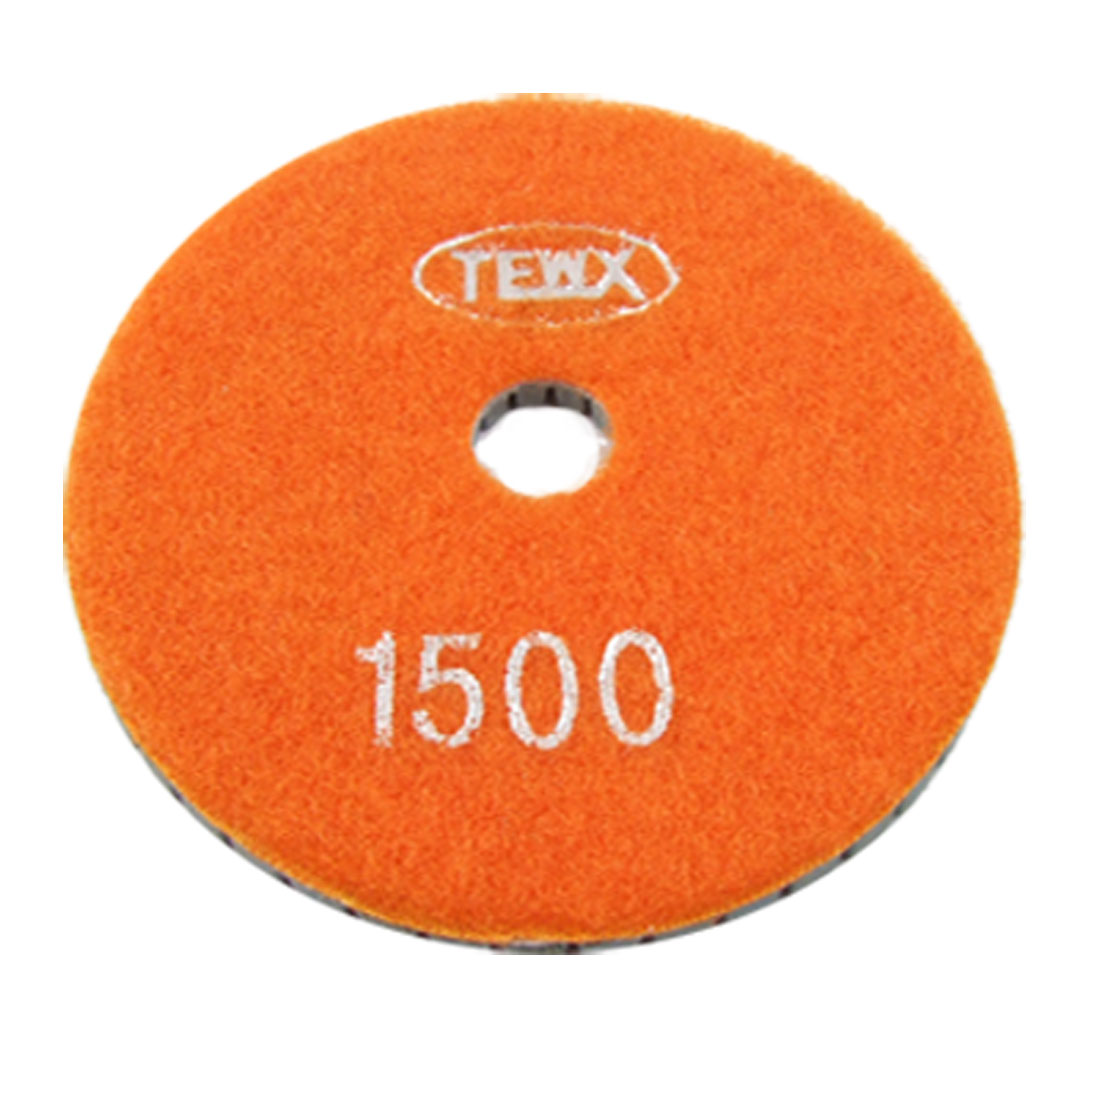 "4"" 1500 Grit Granite Stone Marble Buffing Diamond Polishing Pad Disc 5.5mm Thick"